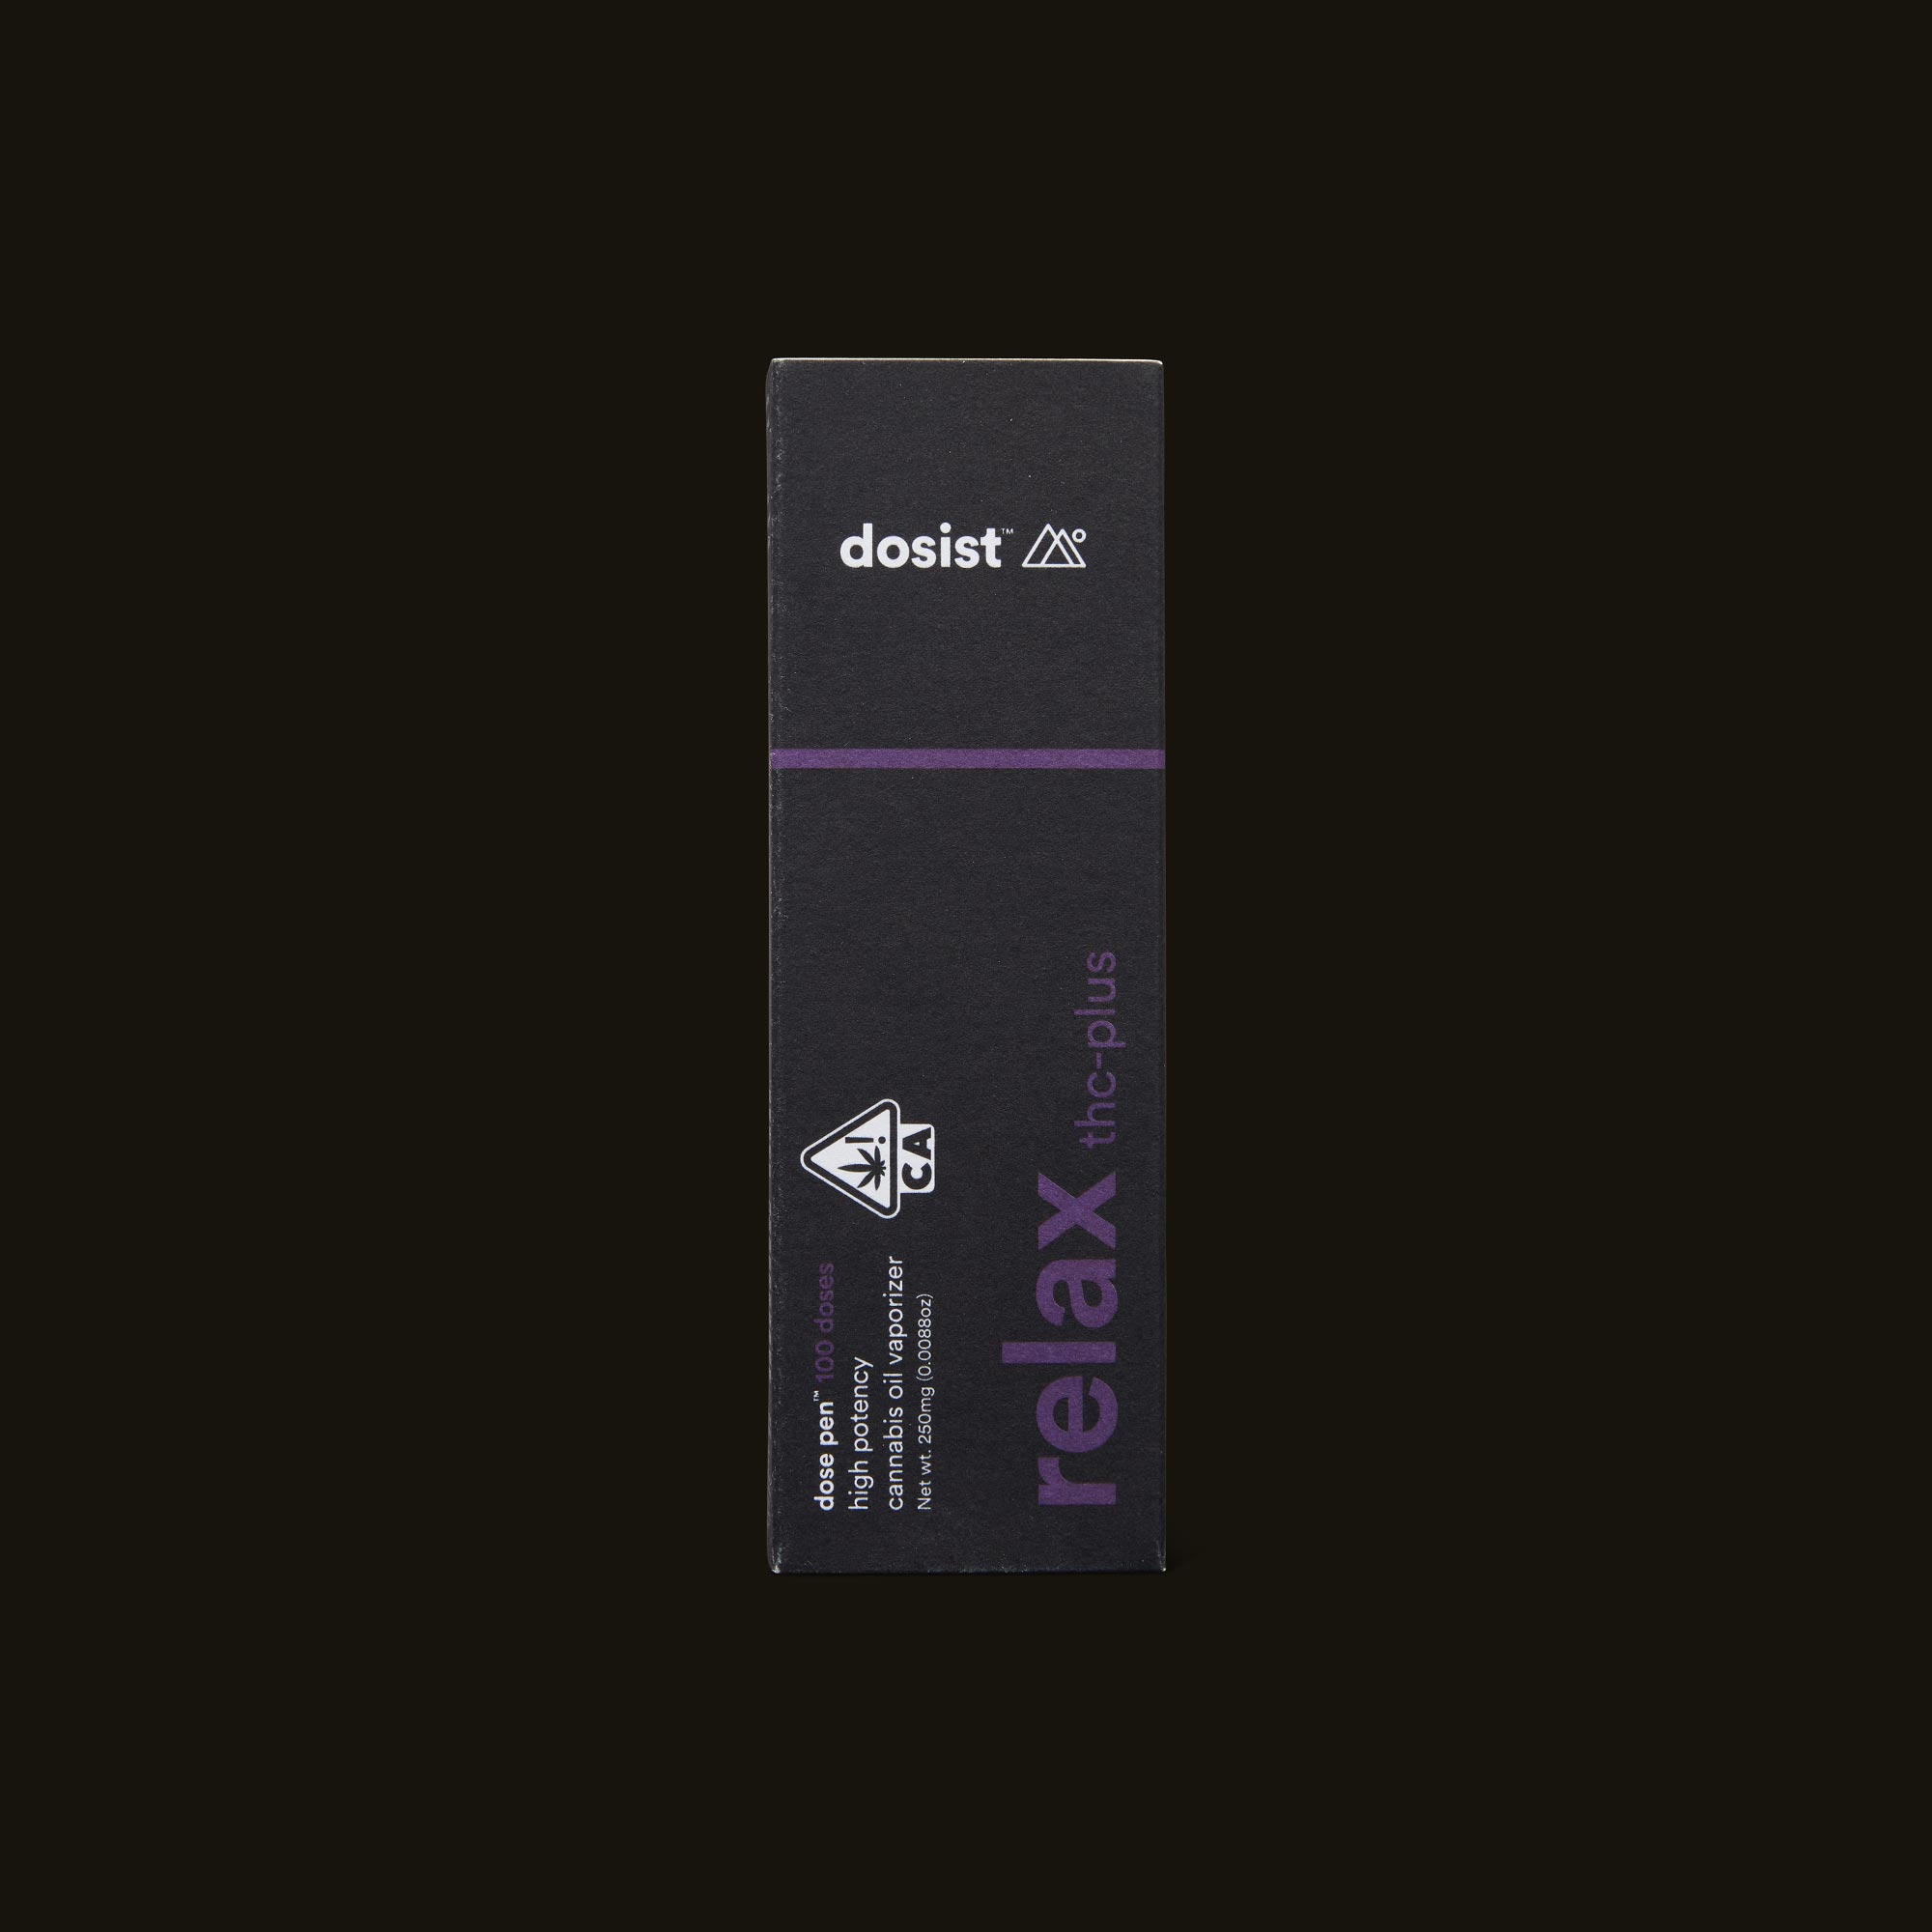 dosist relax thc-plus dose pen front box